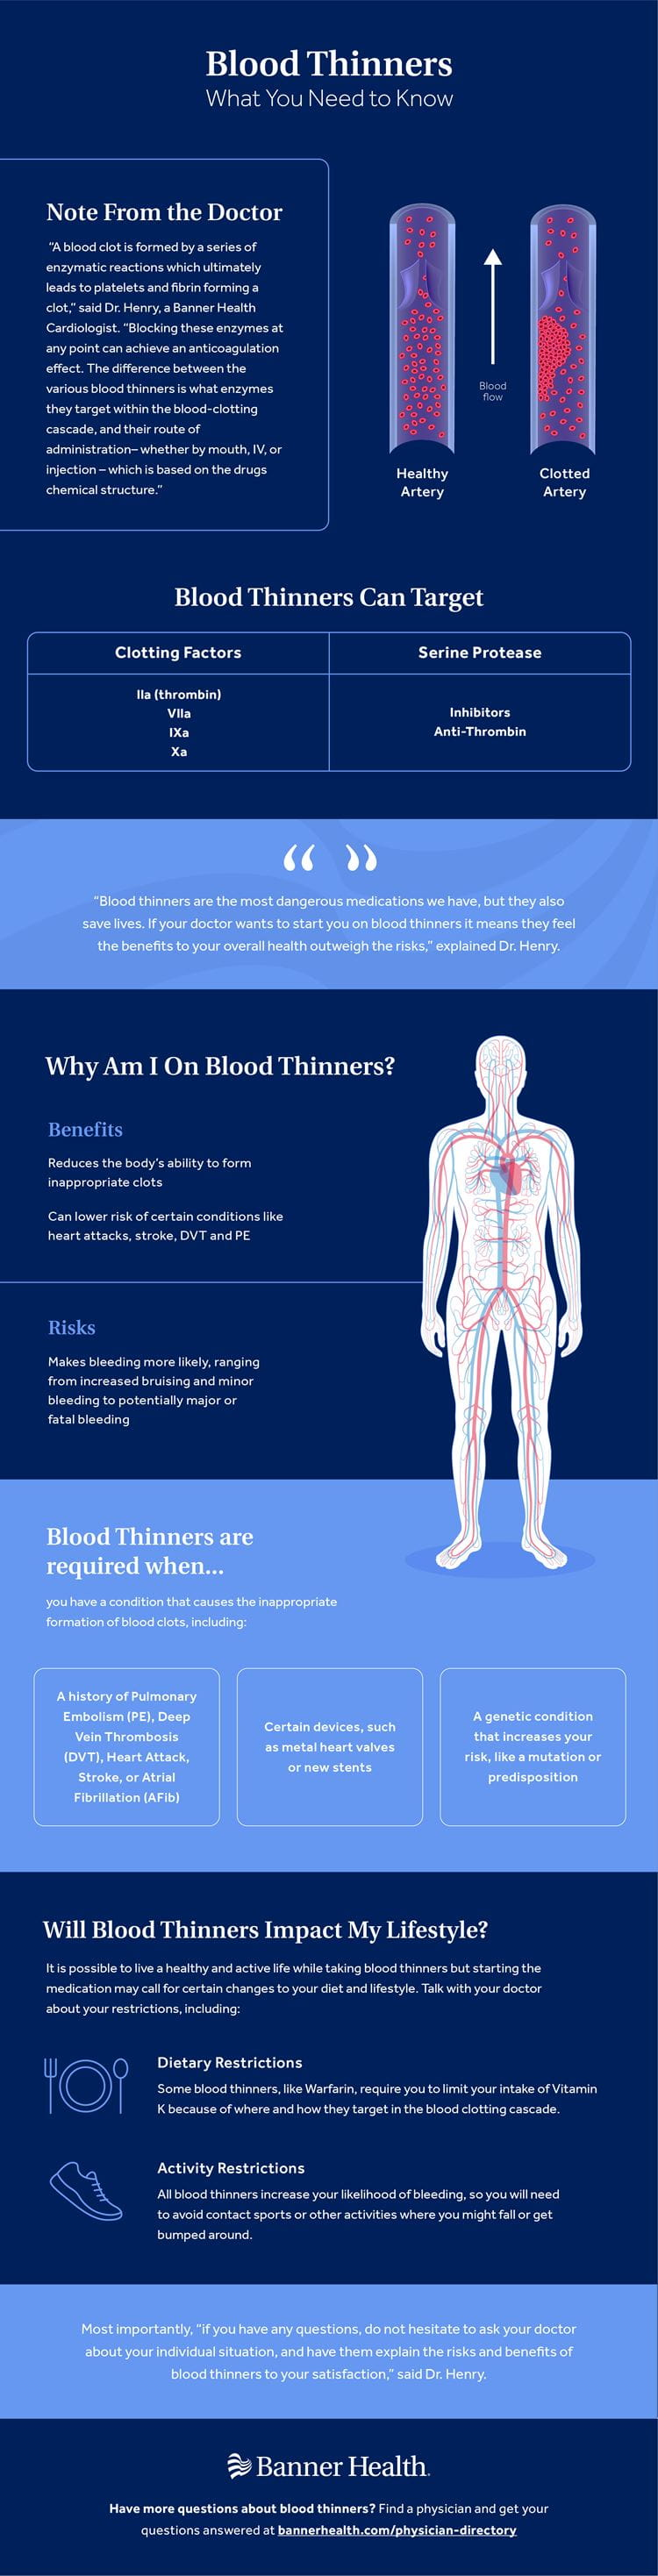 Blood Thinners Infographic